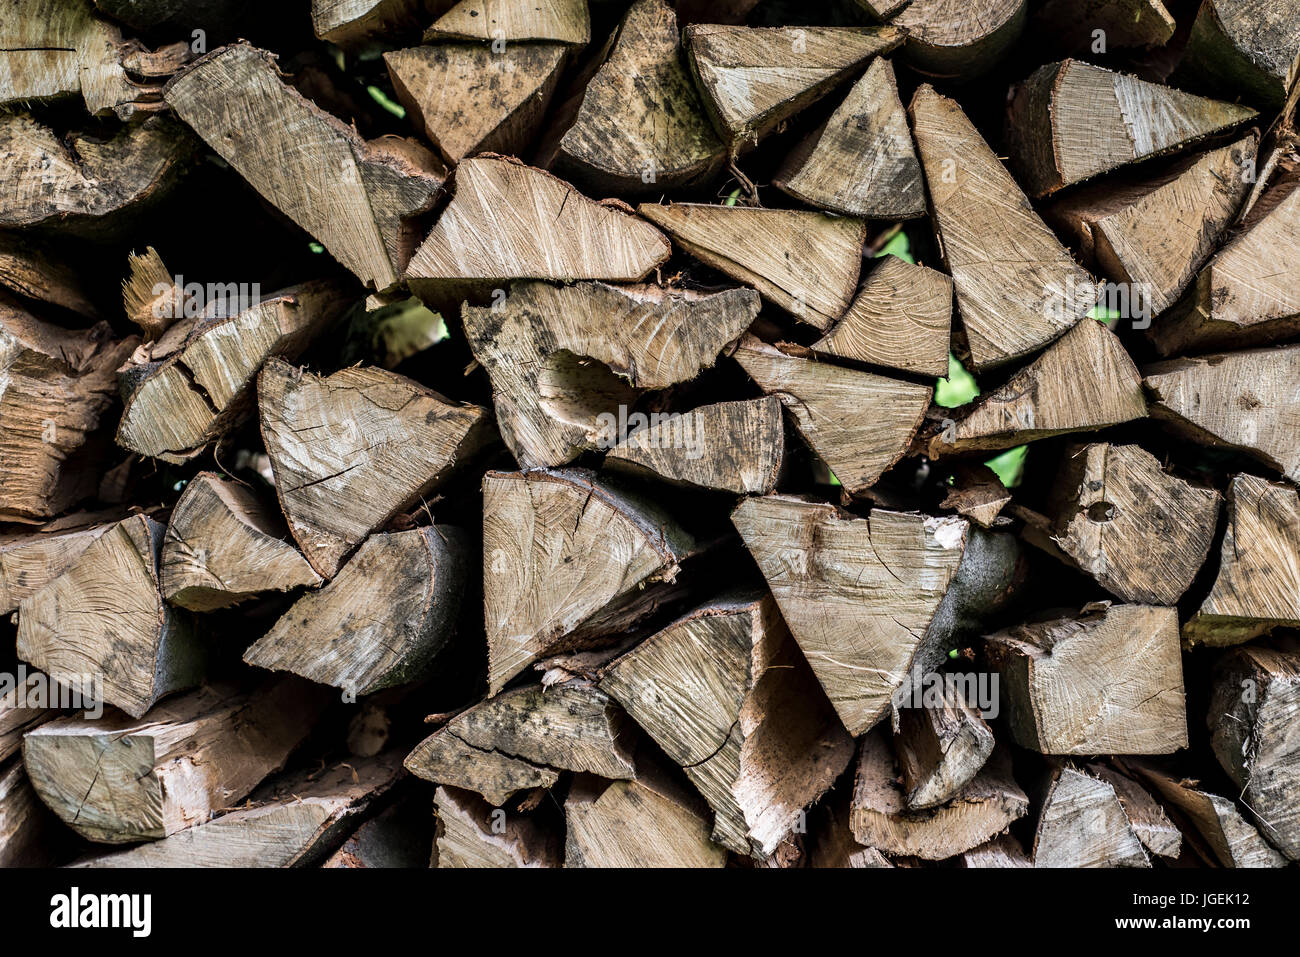 Abstract photo of a pile of natural wooden logs background dry chopped firewood logs ready for winter Stock Photo